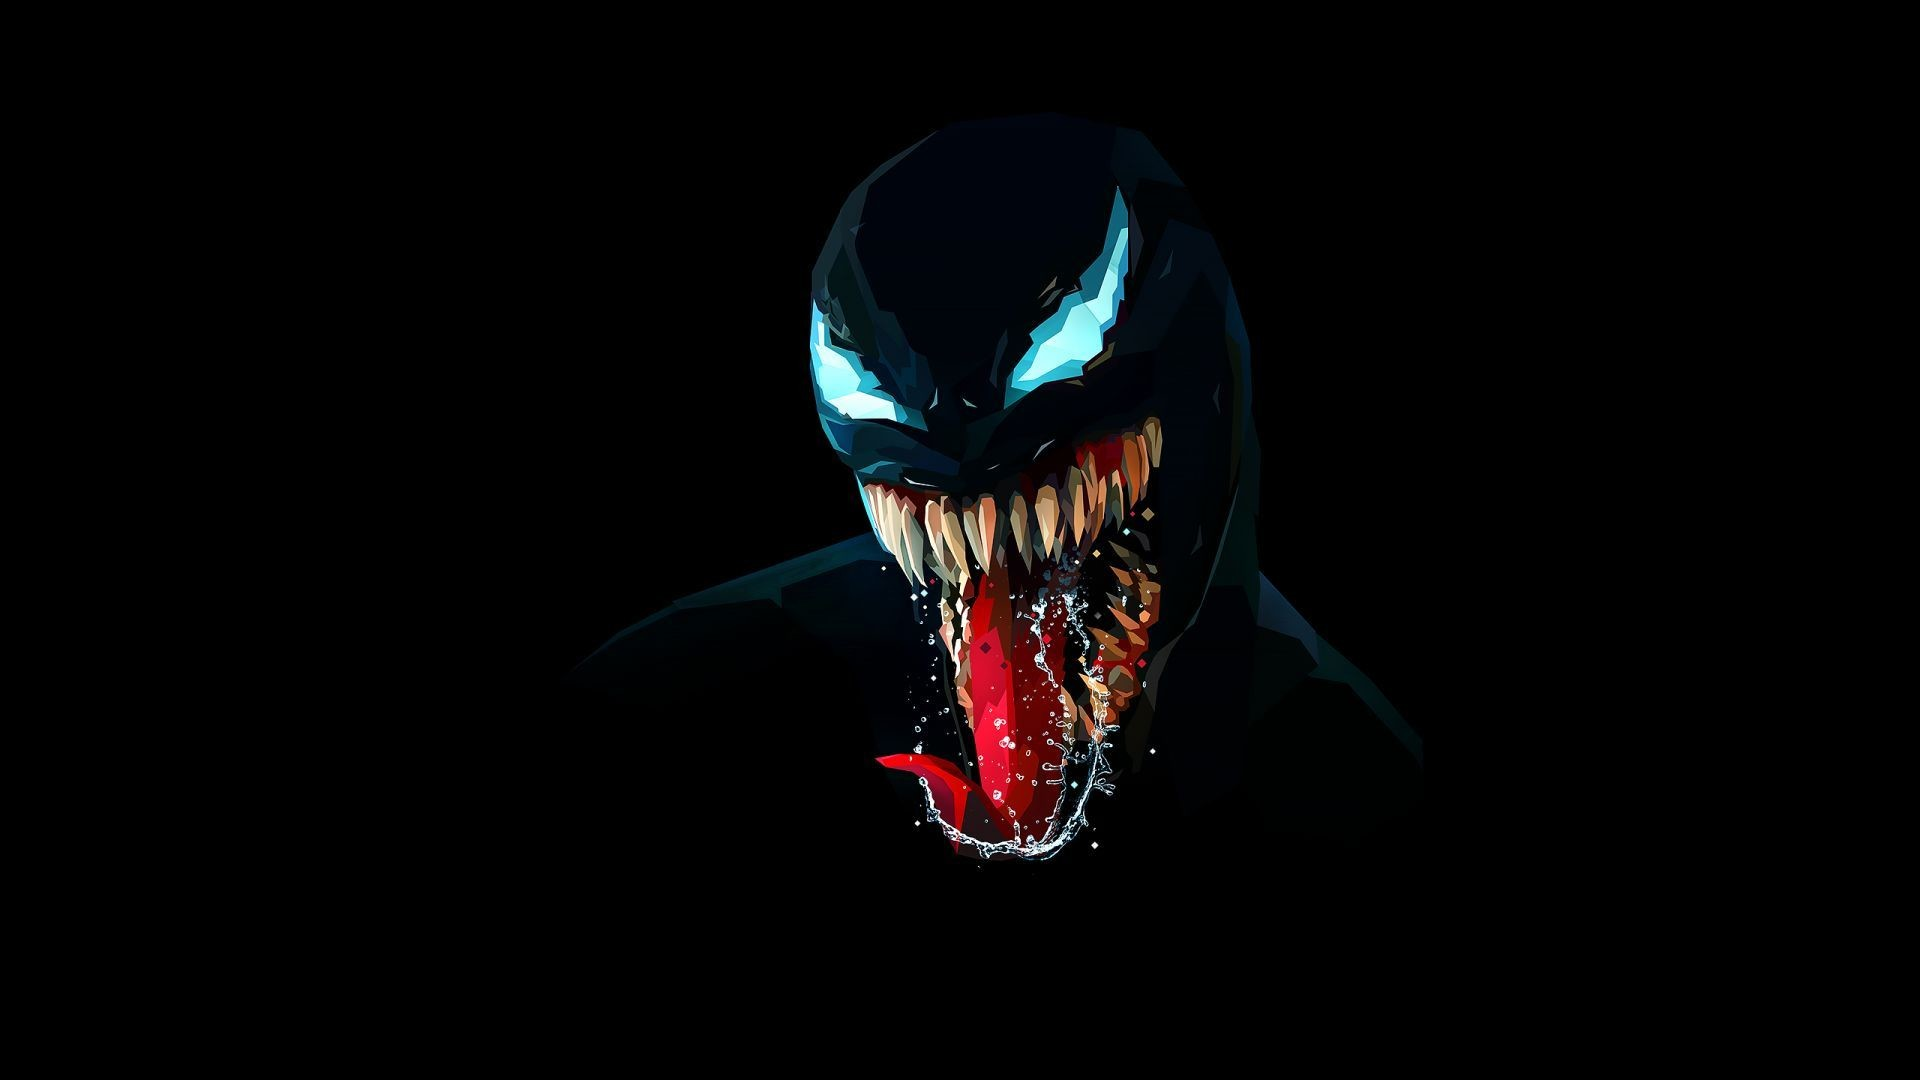 1920x1080 Venom 2018 Wallpapers Widescreen